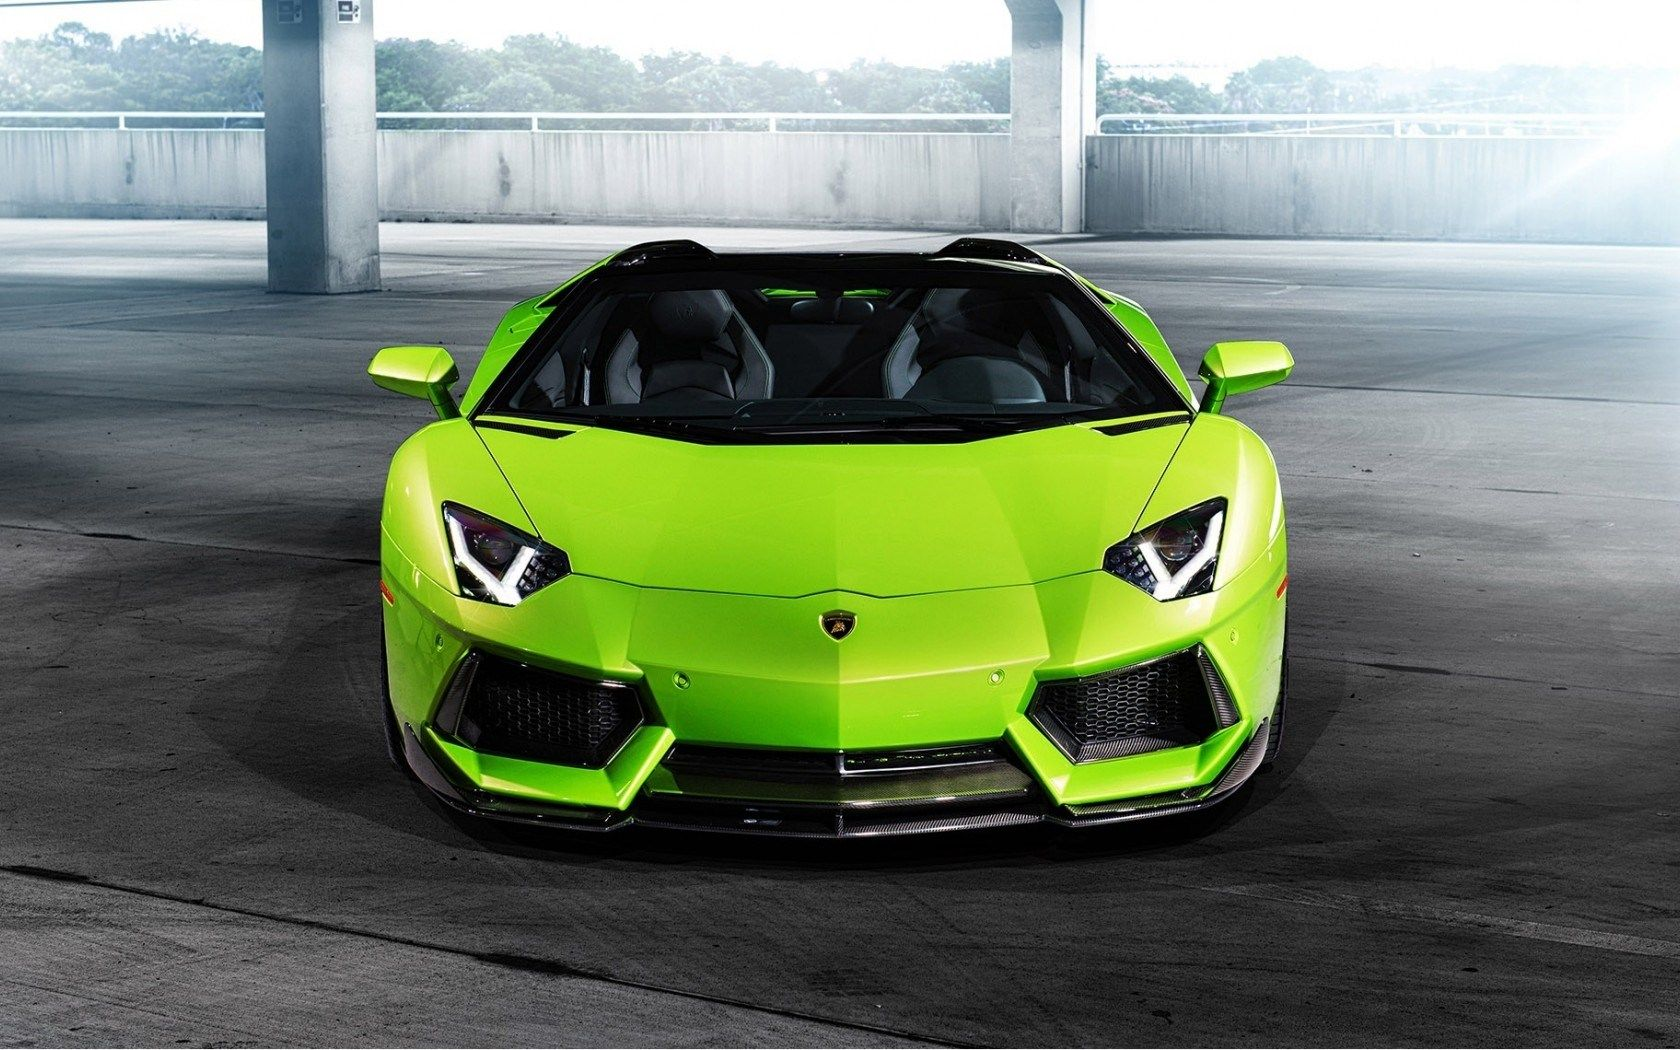 Lamborghini Green Car Hd Wallpaper Hd Wallpapers Lamborghini Aventador Roadster Lamborghini Aventador Lamborghini